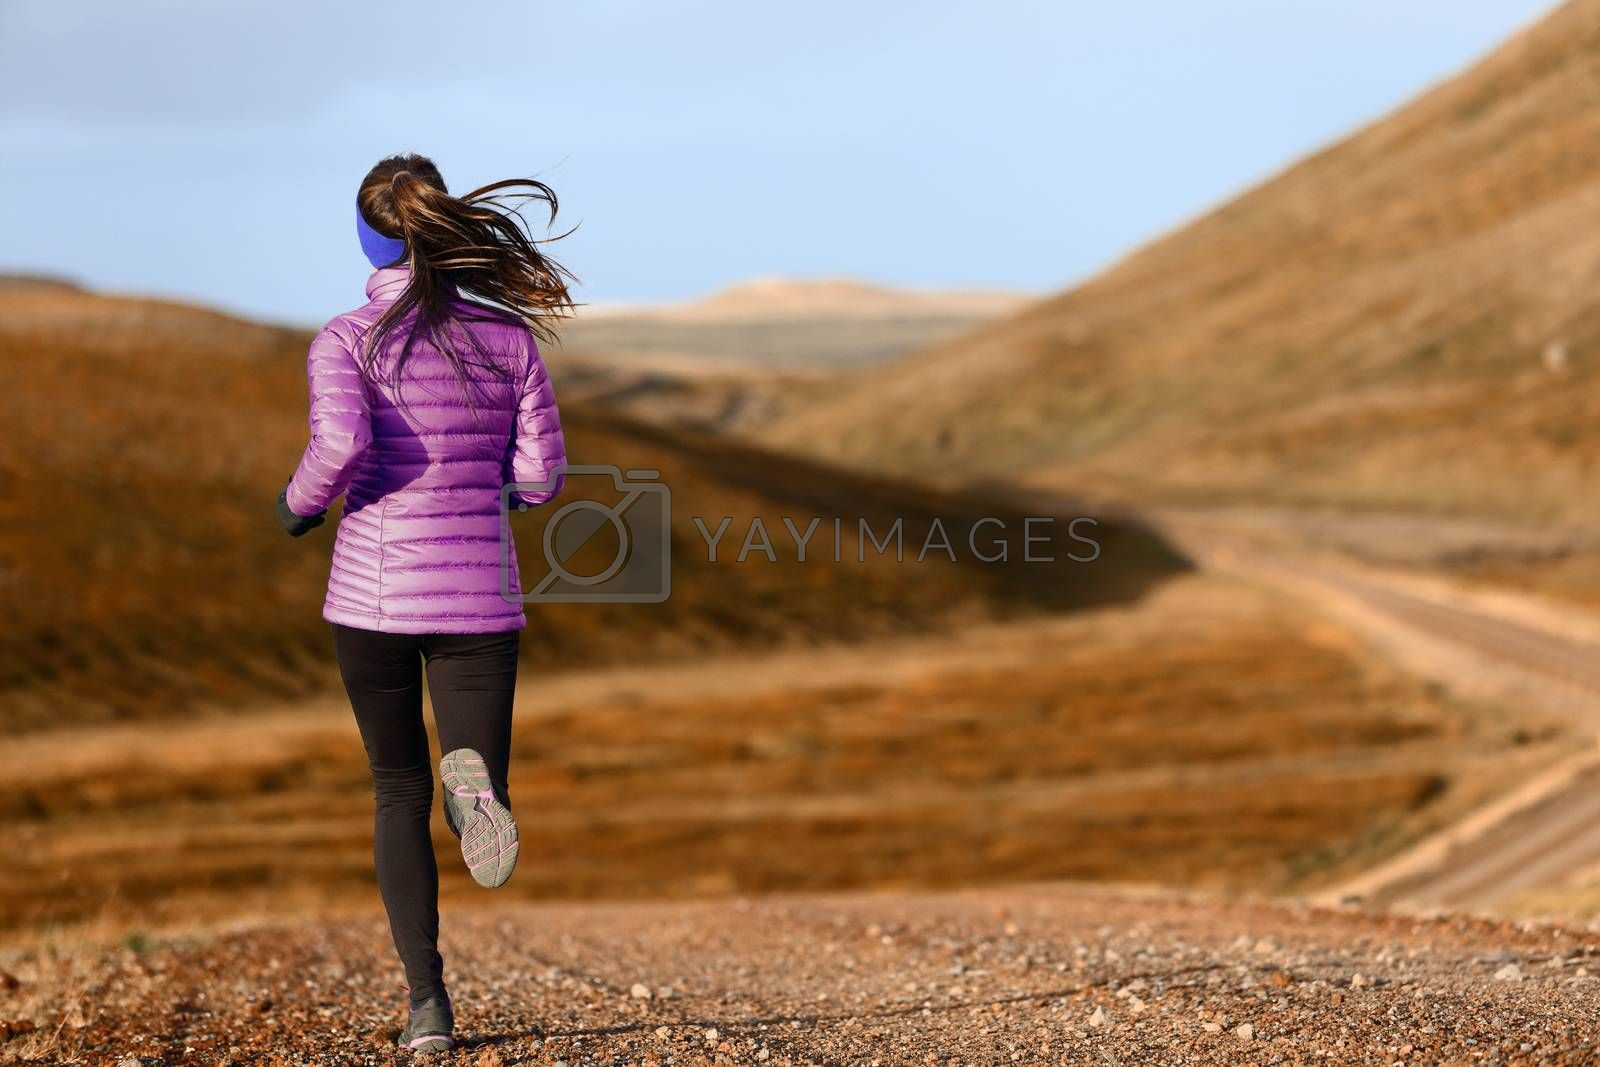 Woman trail runner running in mountain landscape. Female runner in warm clothes for autumn jogging cross country outdoors in foliage nature background.